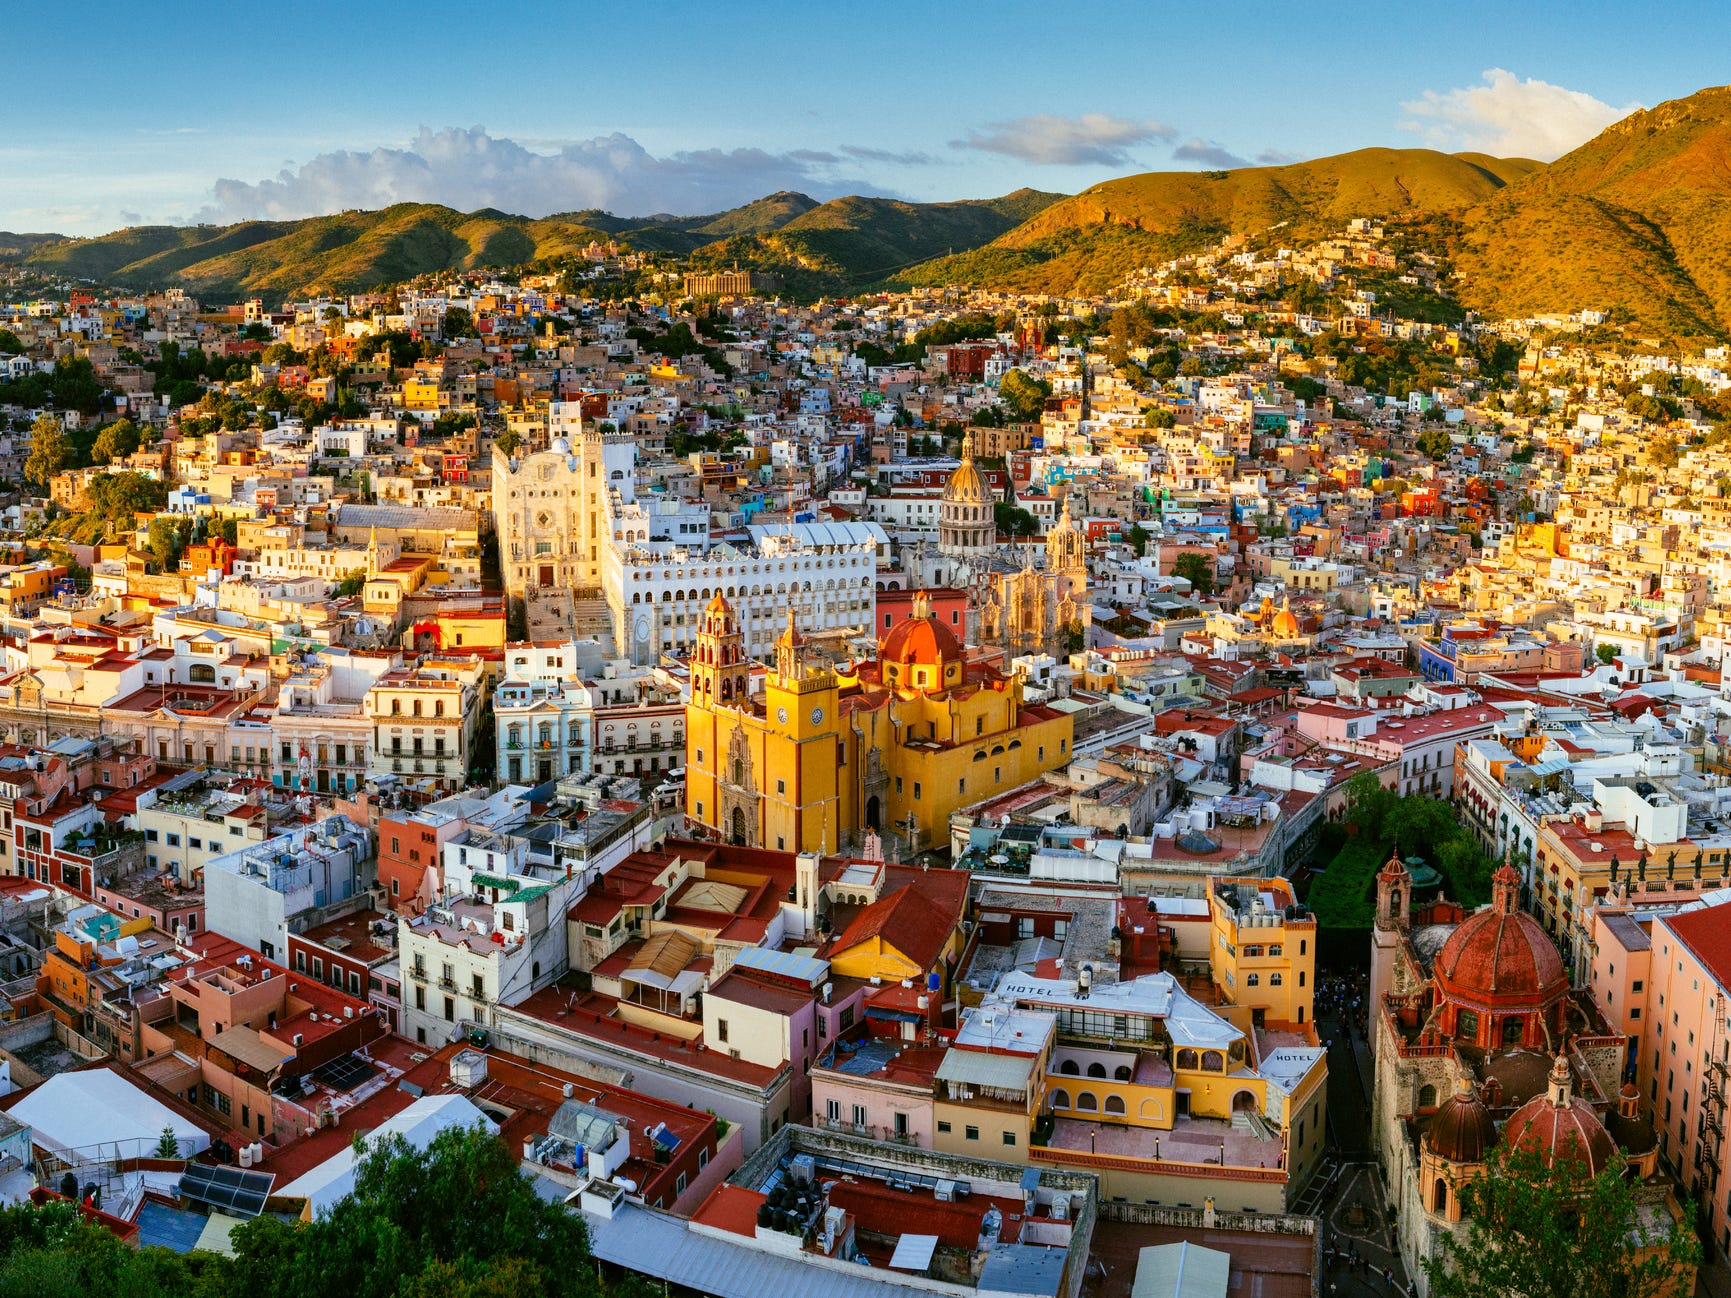 The hills around the city center are blanketed with houses in every shade, while the historic center features cobblestone streets and a striking basilica painted in bright yellow and red.